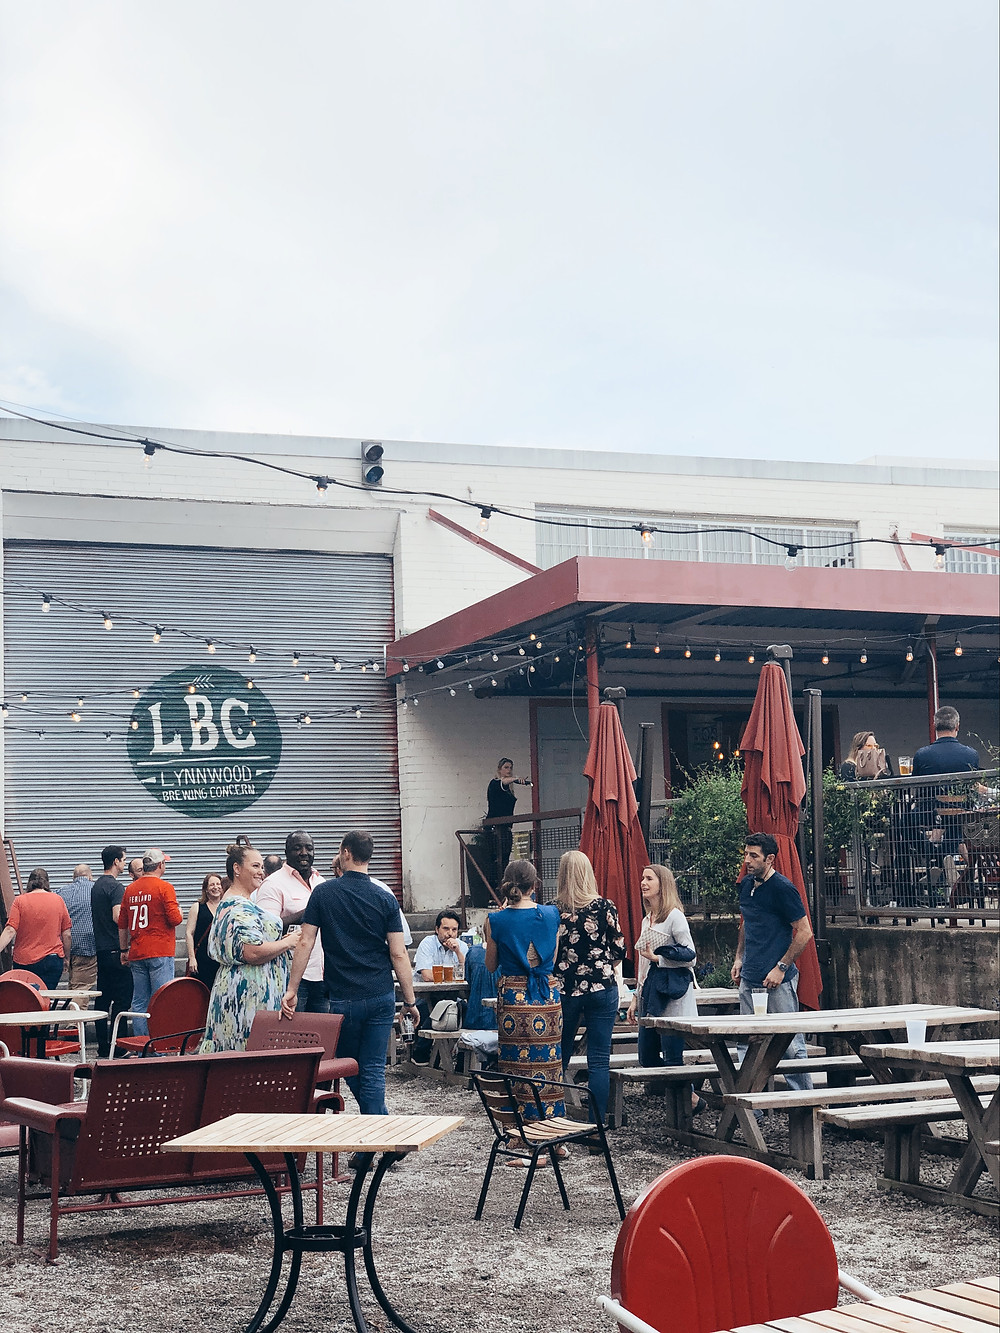 Outdoor patio of Lynnwood Brewing Concern